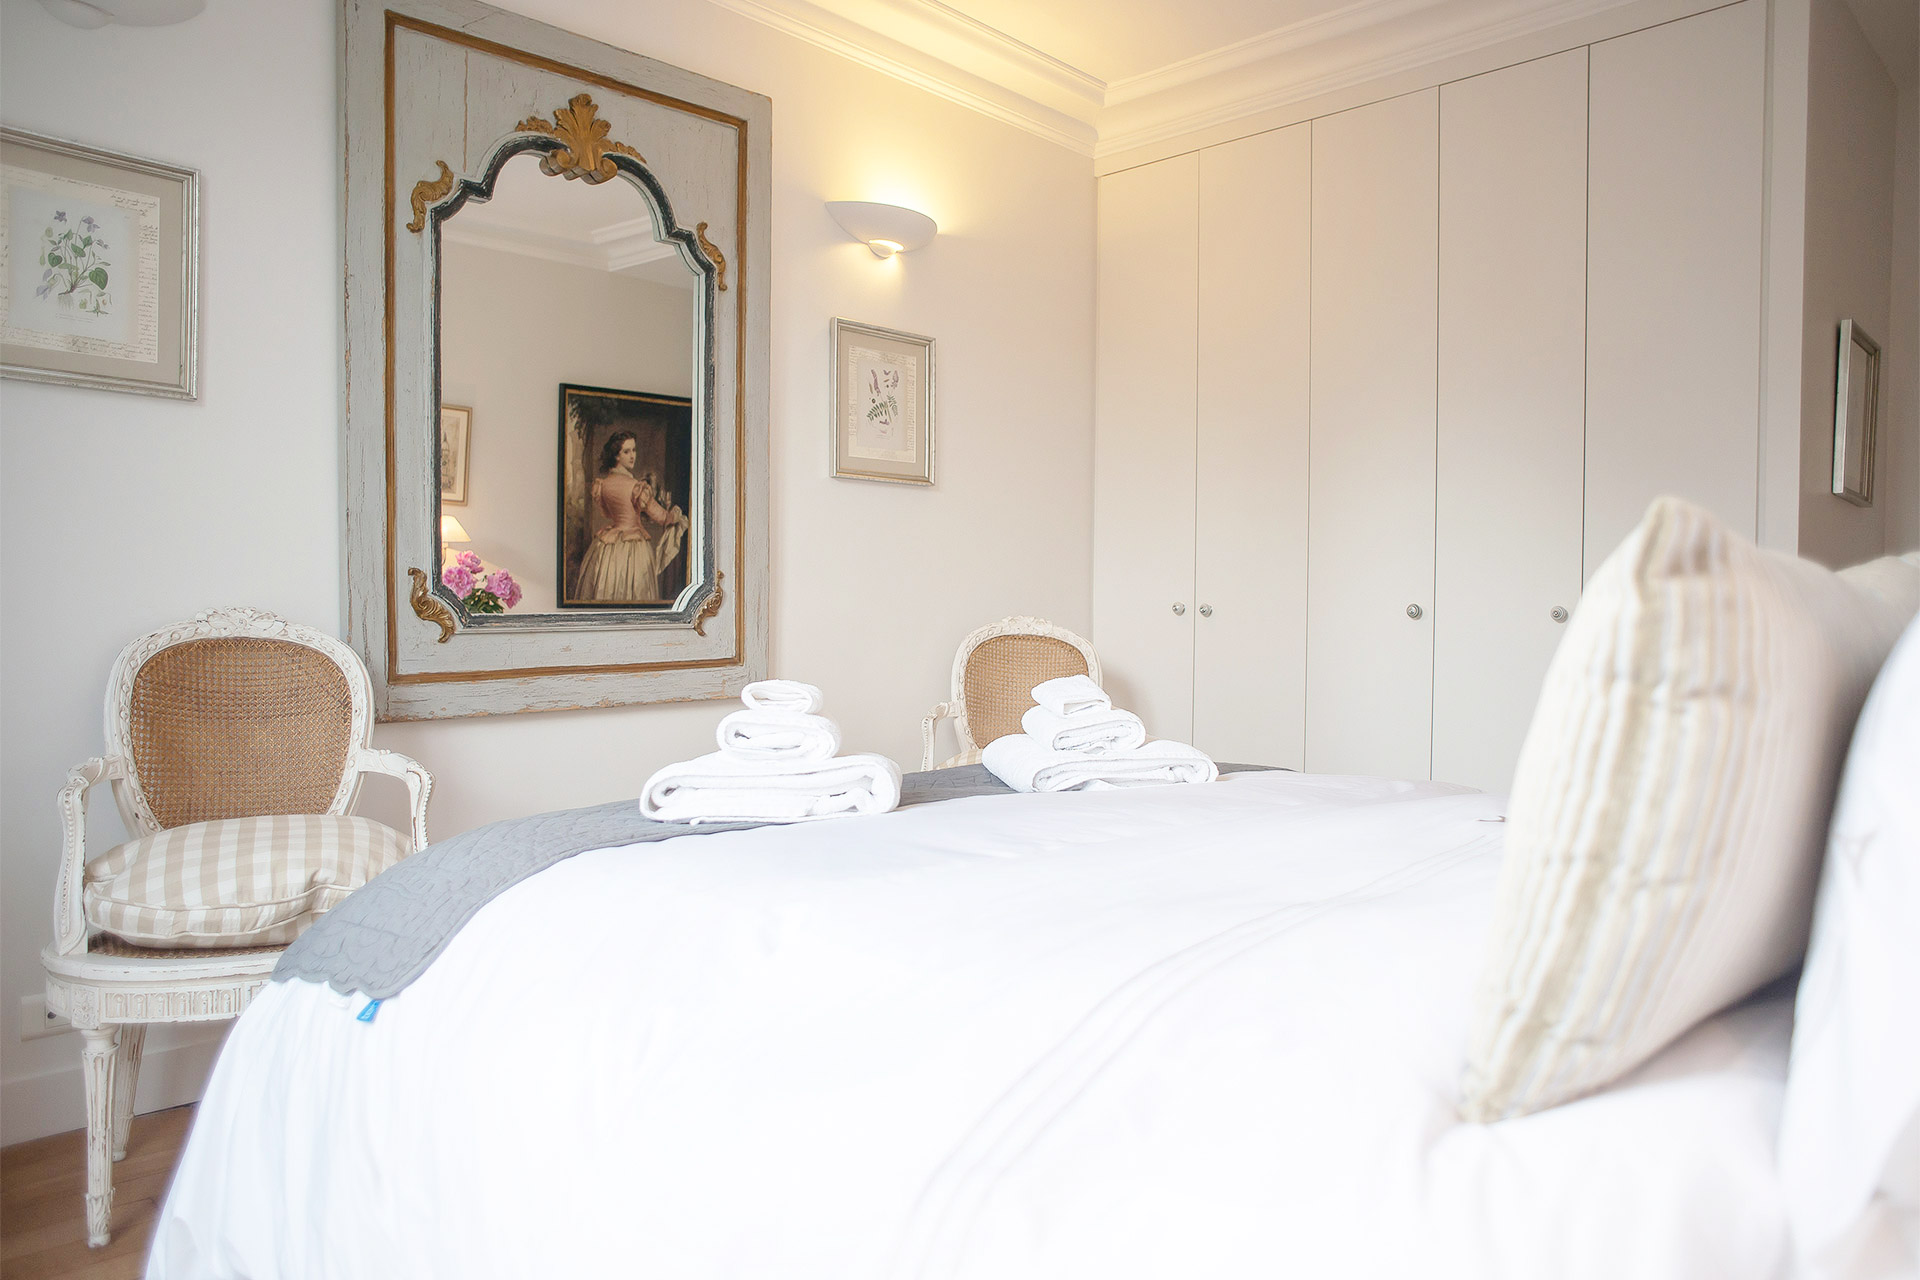 Stylish mirror at the foot of the bed in the Bergerac vacation rental offered by Paris Perfect